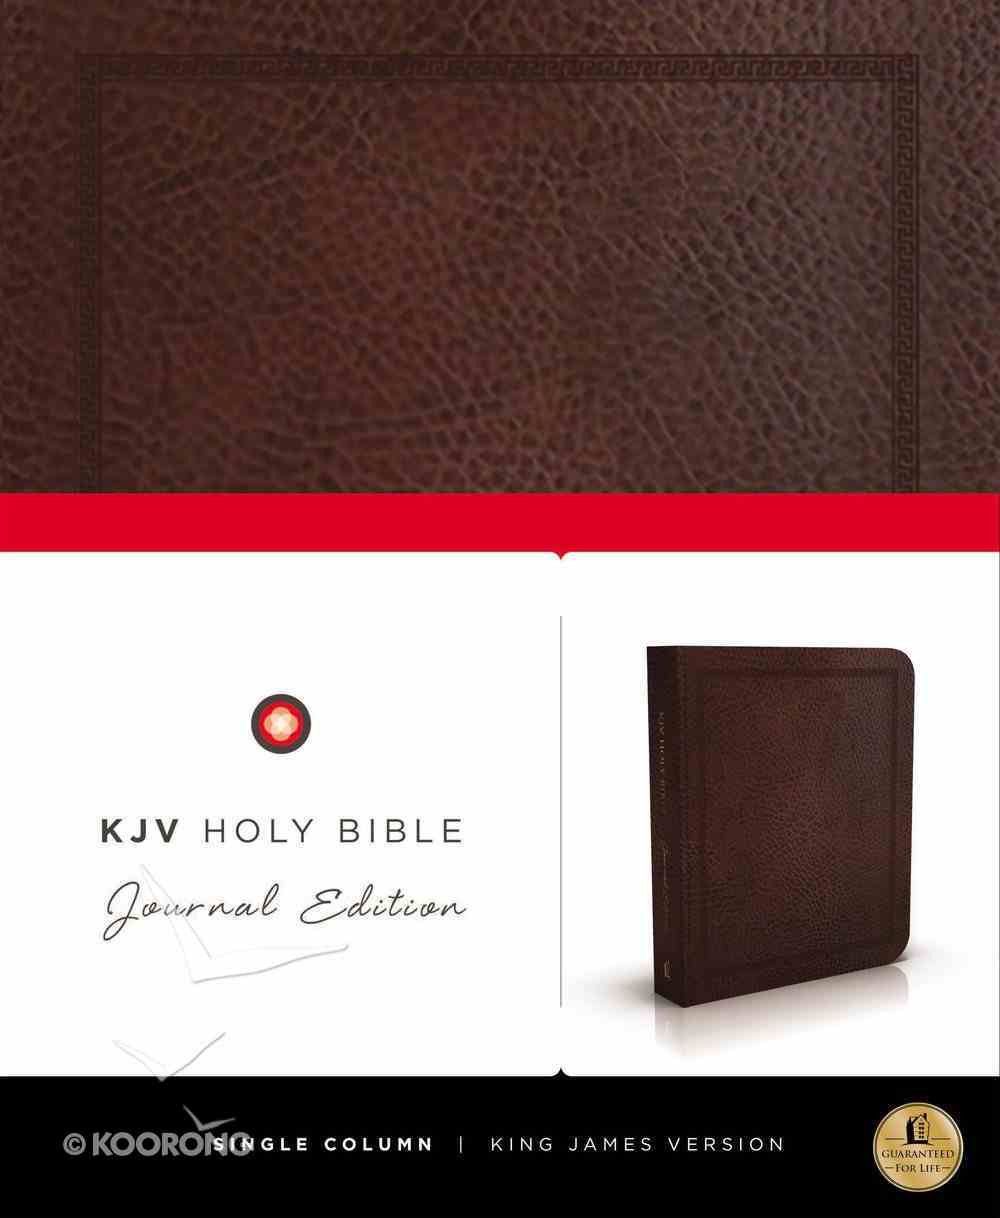 KJV Holy Bible Journal Brown Leathersoft (Red Letter Edition) Imitation Leather